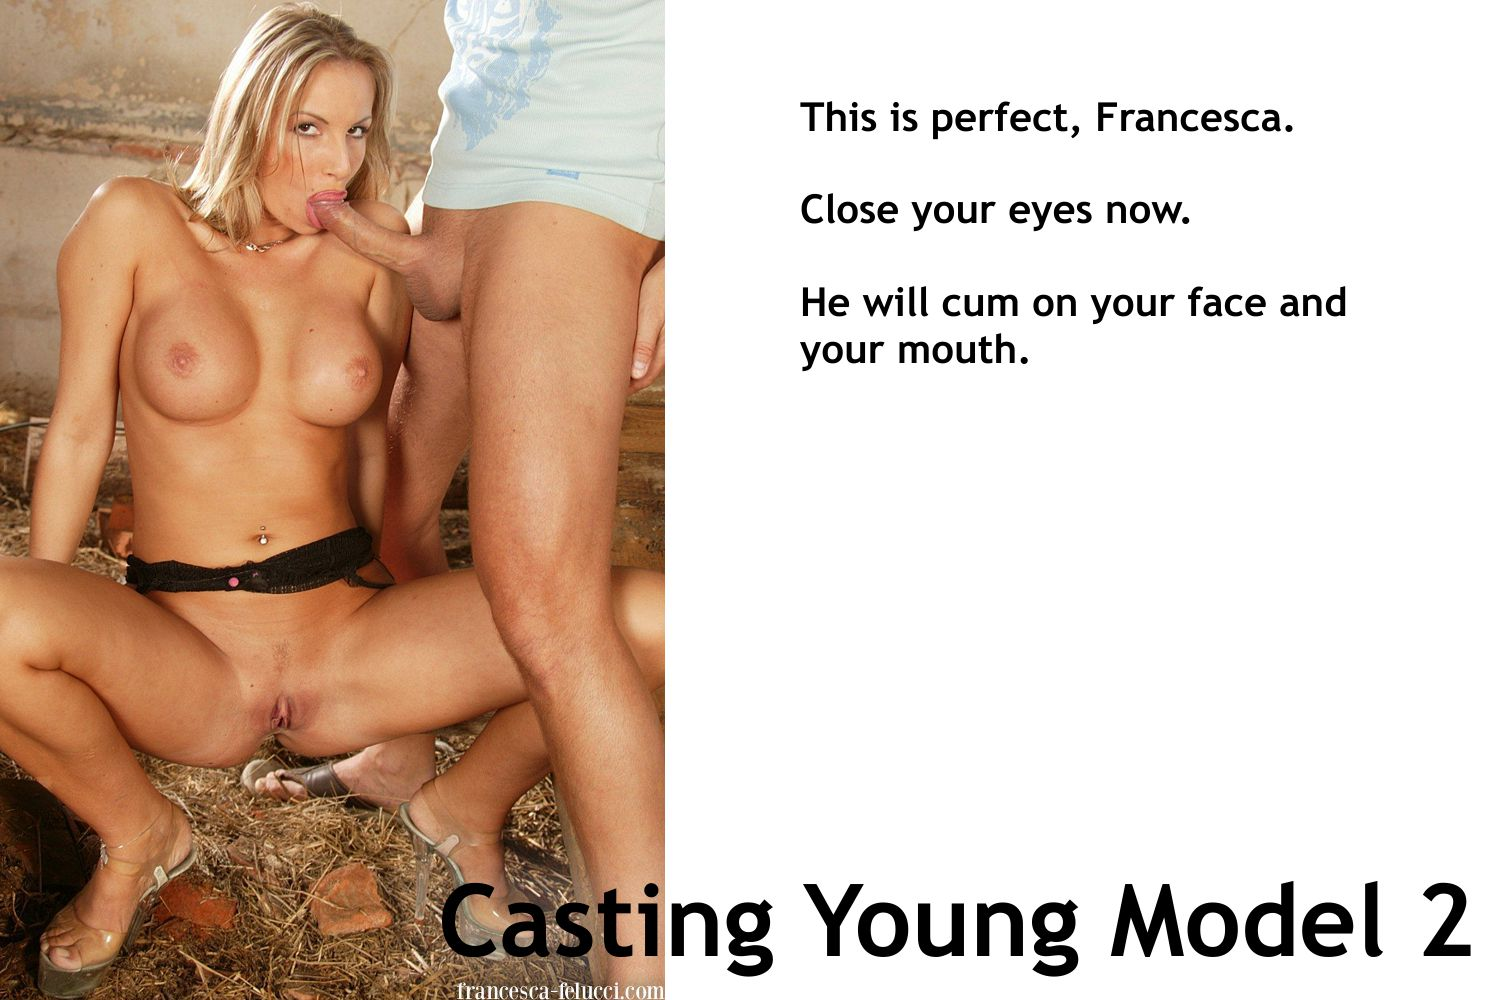 casting_young_model_2_016